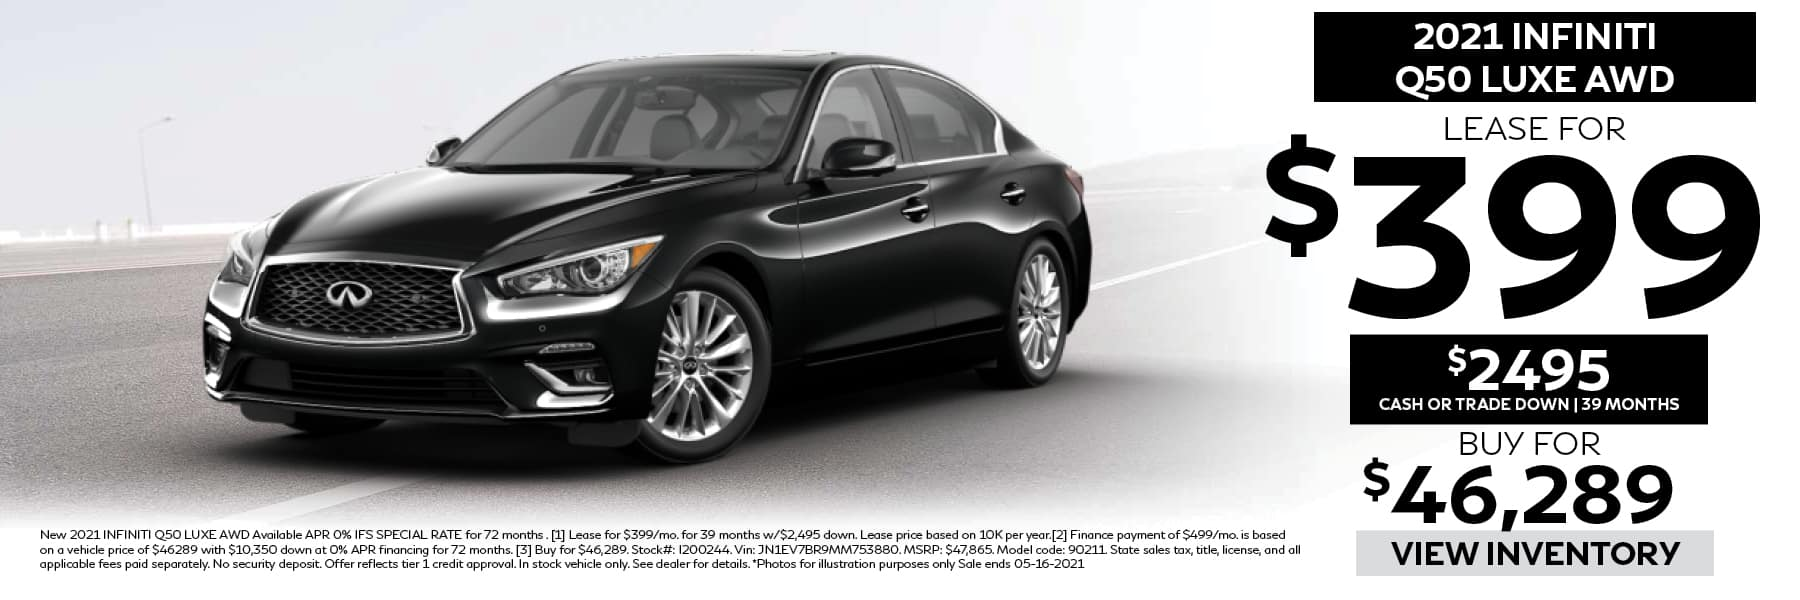 revised_Q50_LUXE_webslides_INFINITI (1)